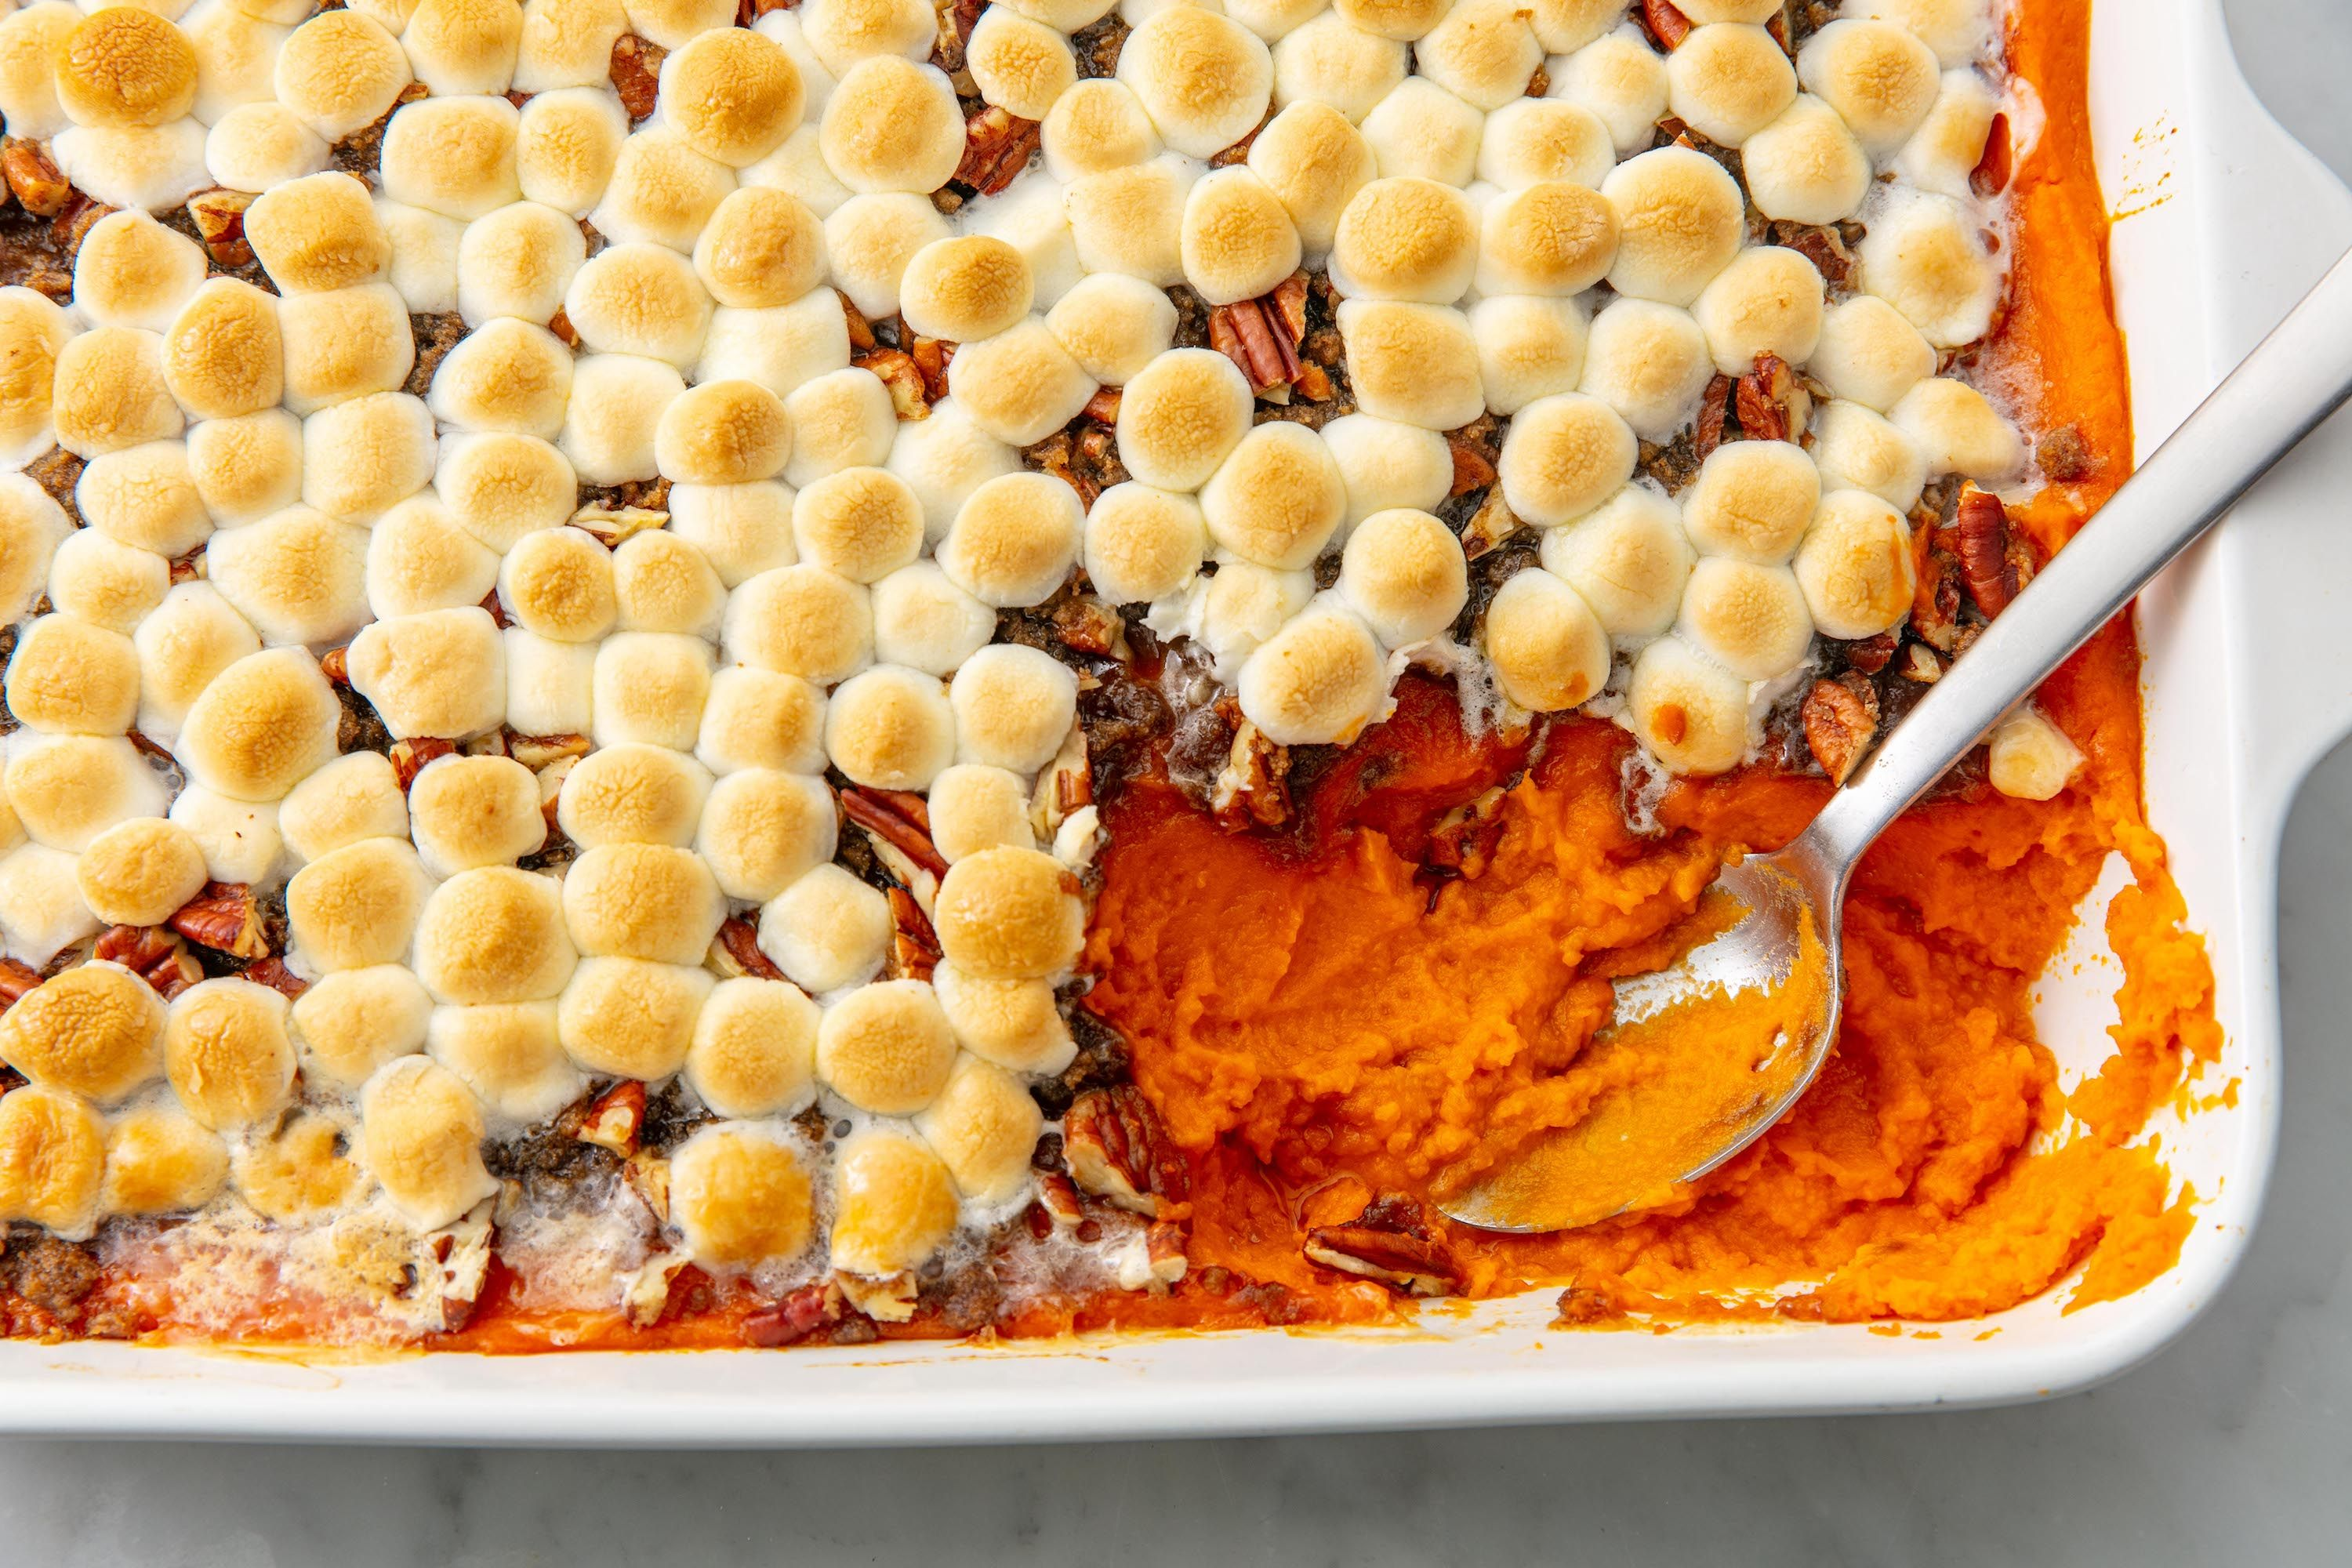 Cuisine Yam Sweet Potato Casserole With Marshmallows